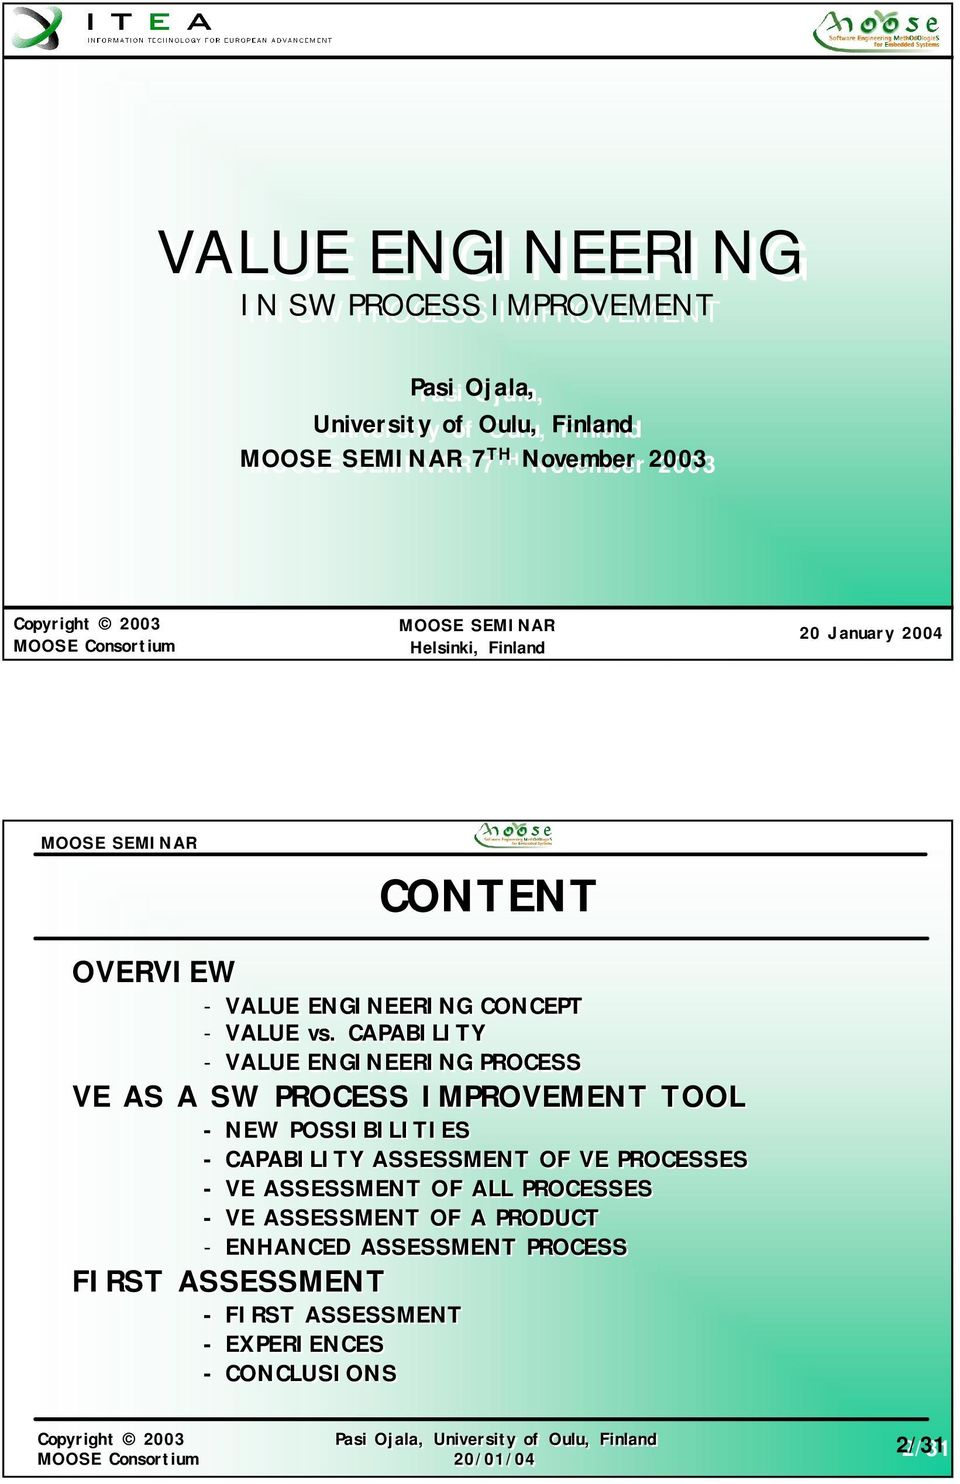 CAPABILITY - VALUE ENGINEERING PROCESS VE AS A SW PROCESS IMPROVEMENT TOOL - NEW POSSIBILITIES - CAPABILITY ASSESSMENT OF